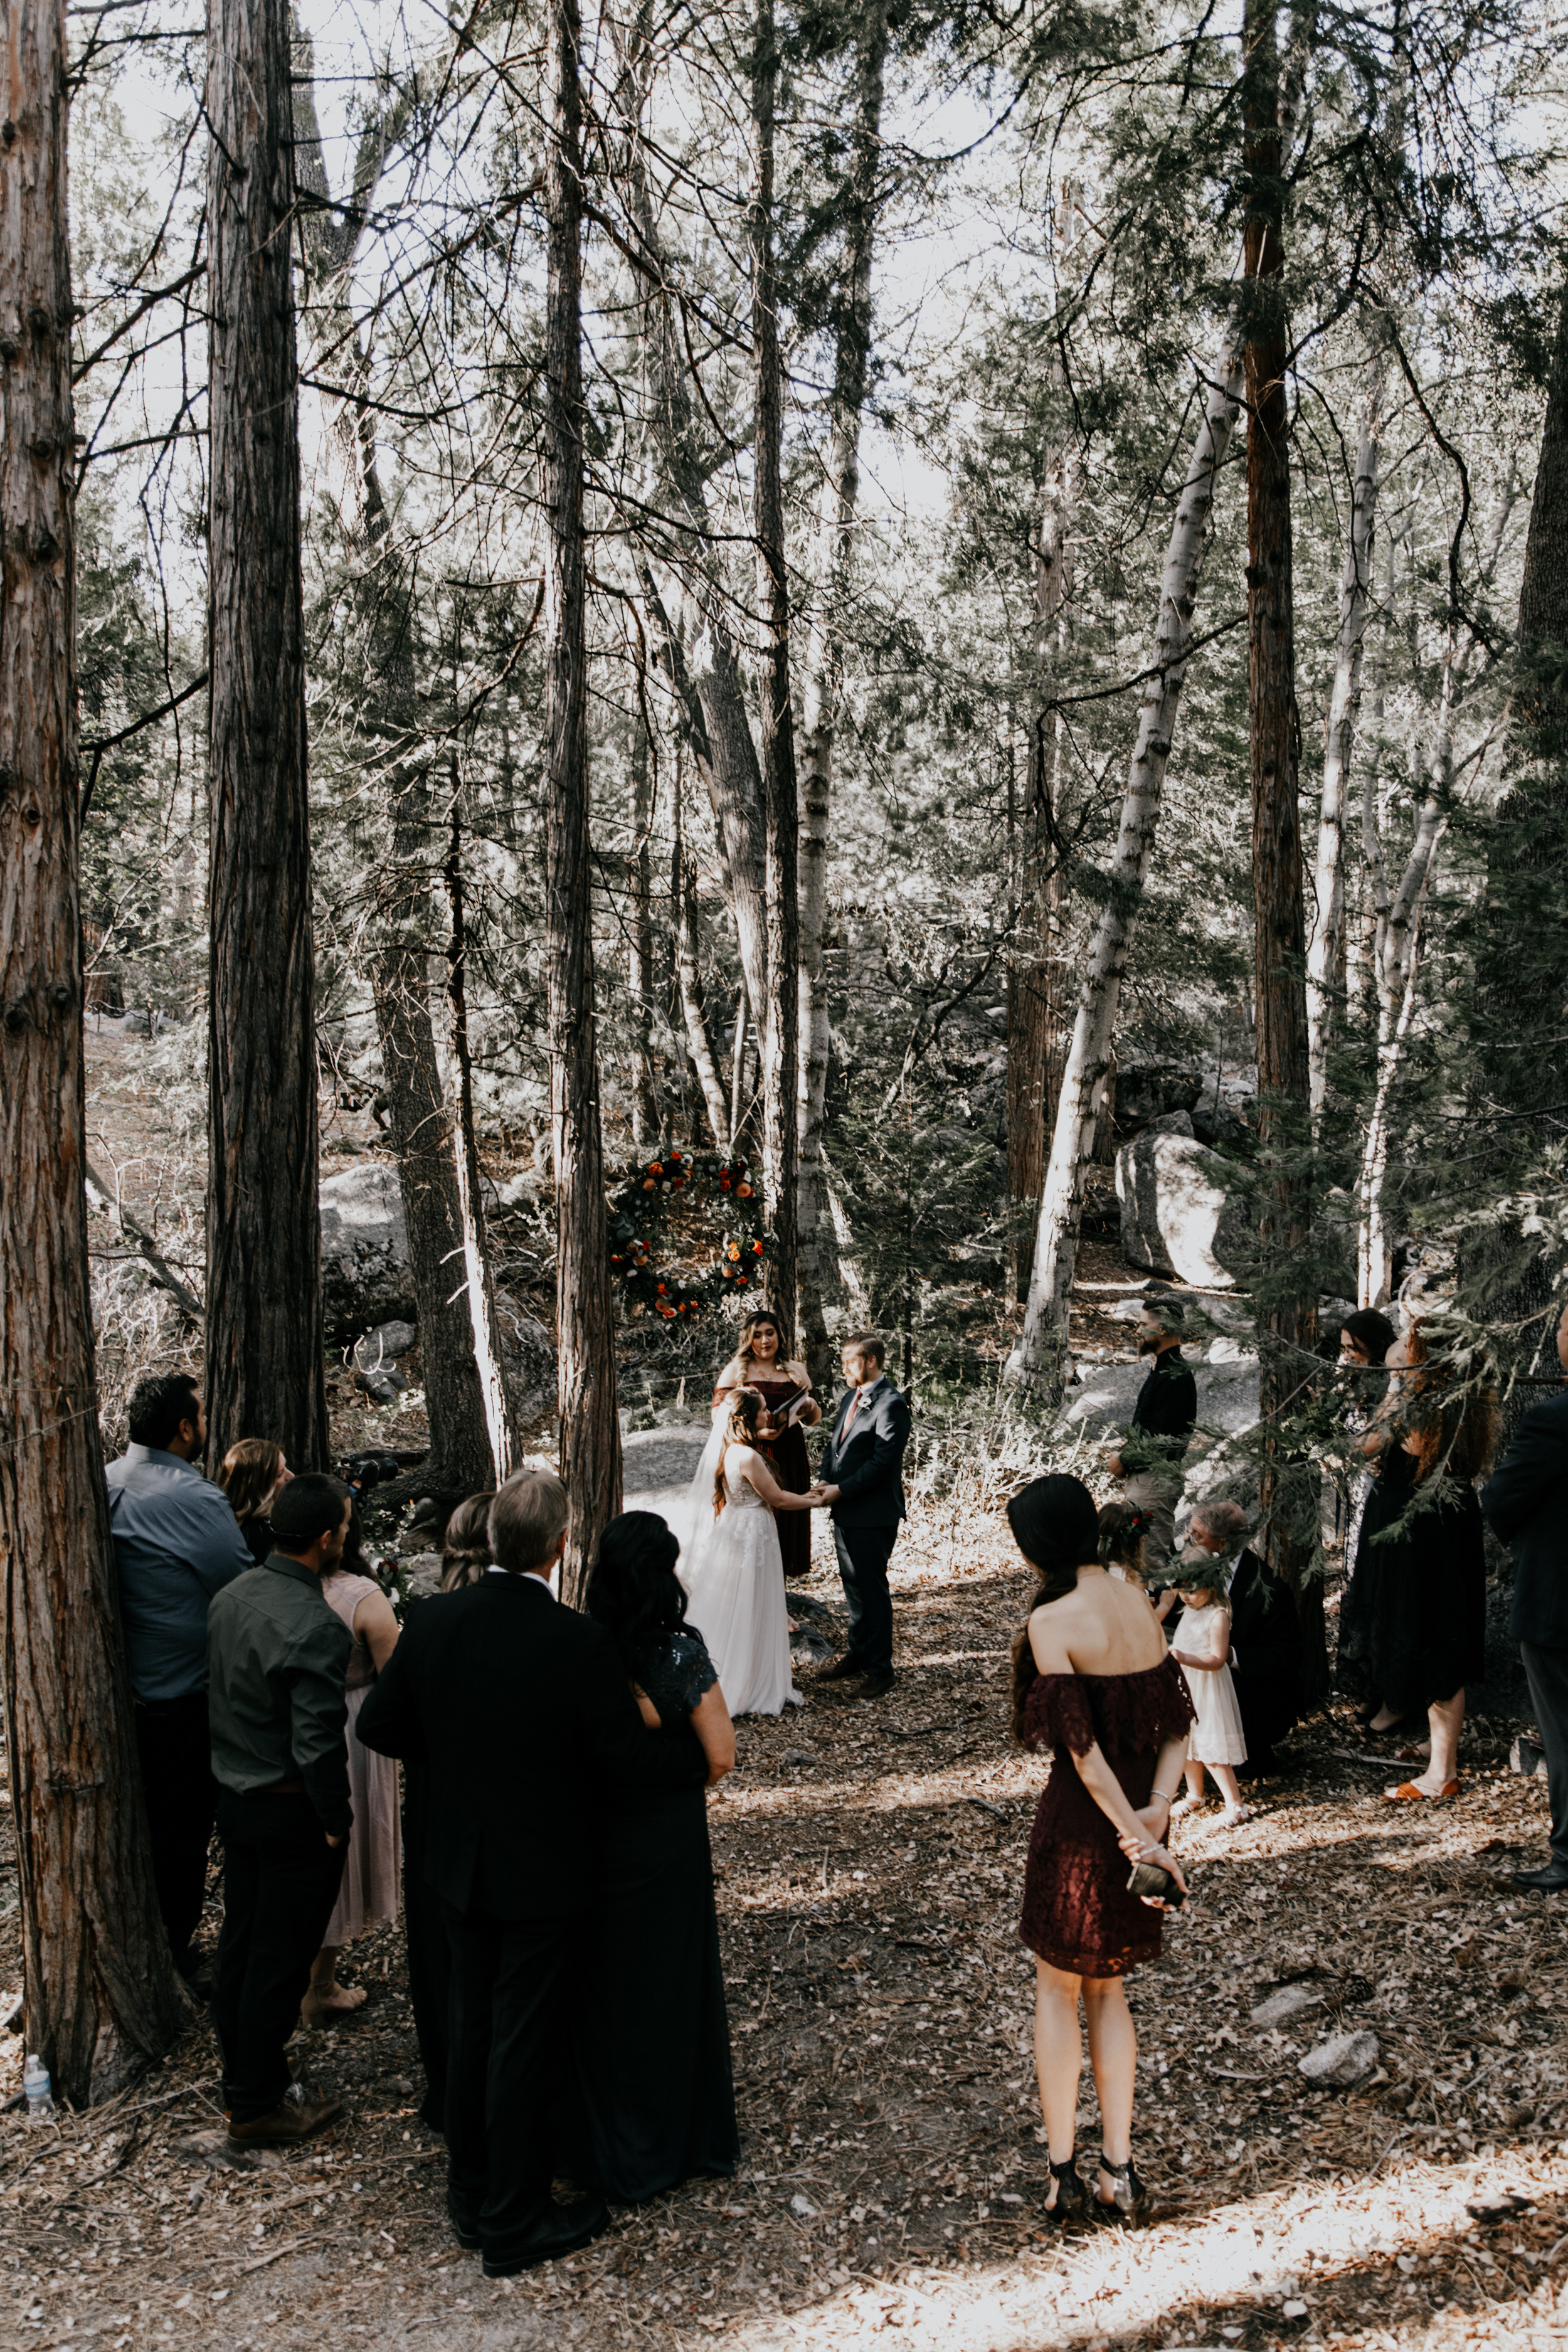 wedding vows under the trees |Astray Photography